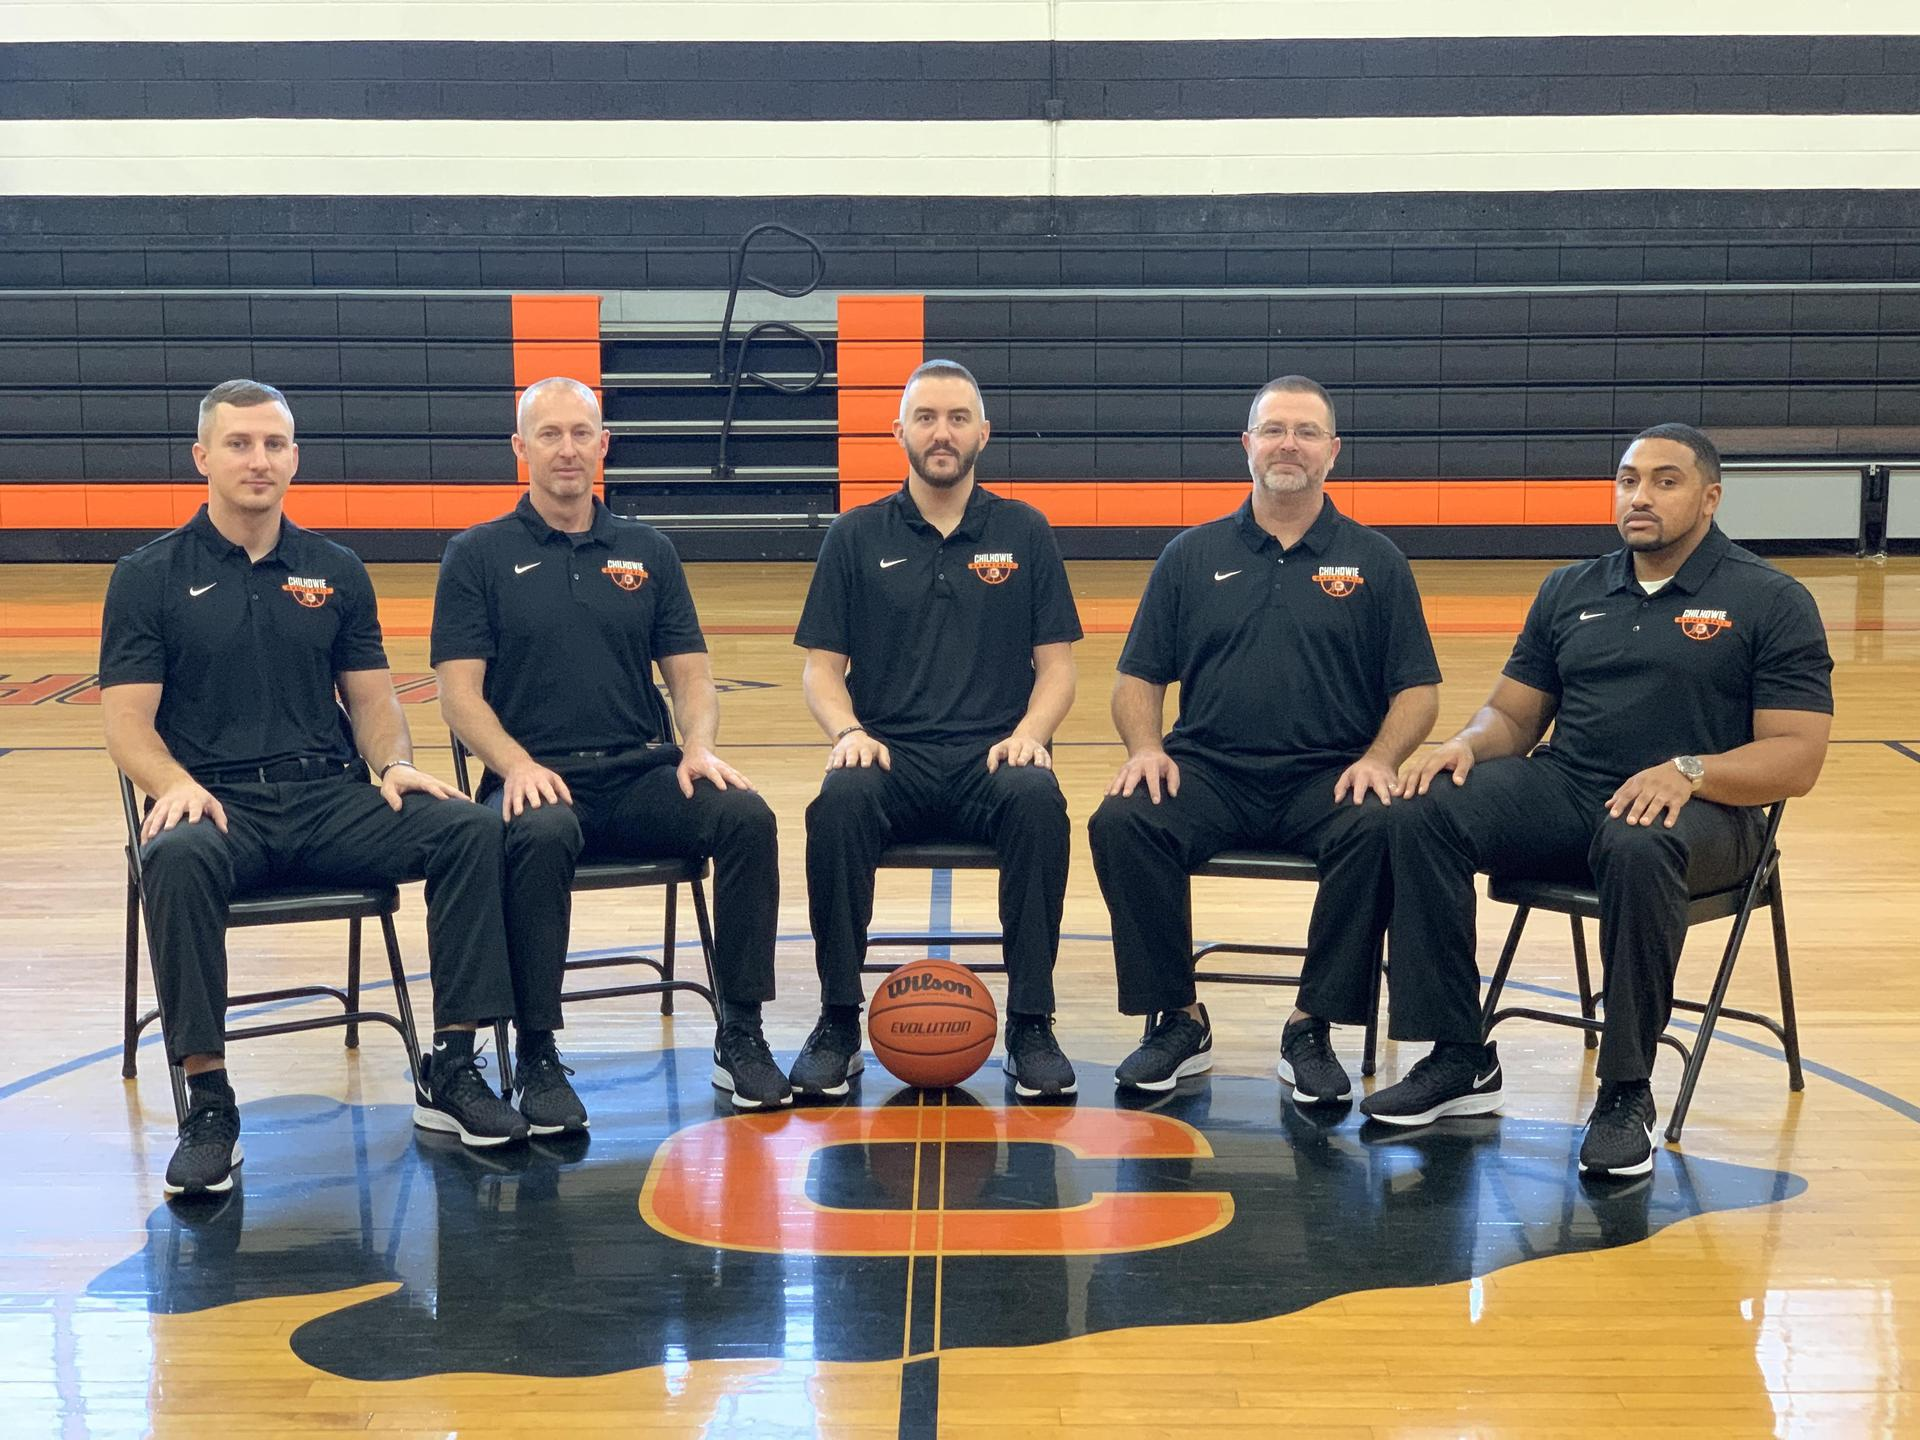 Boys Basketball Coaches 2019-2020